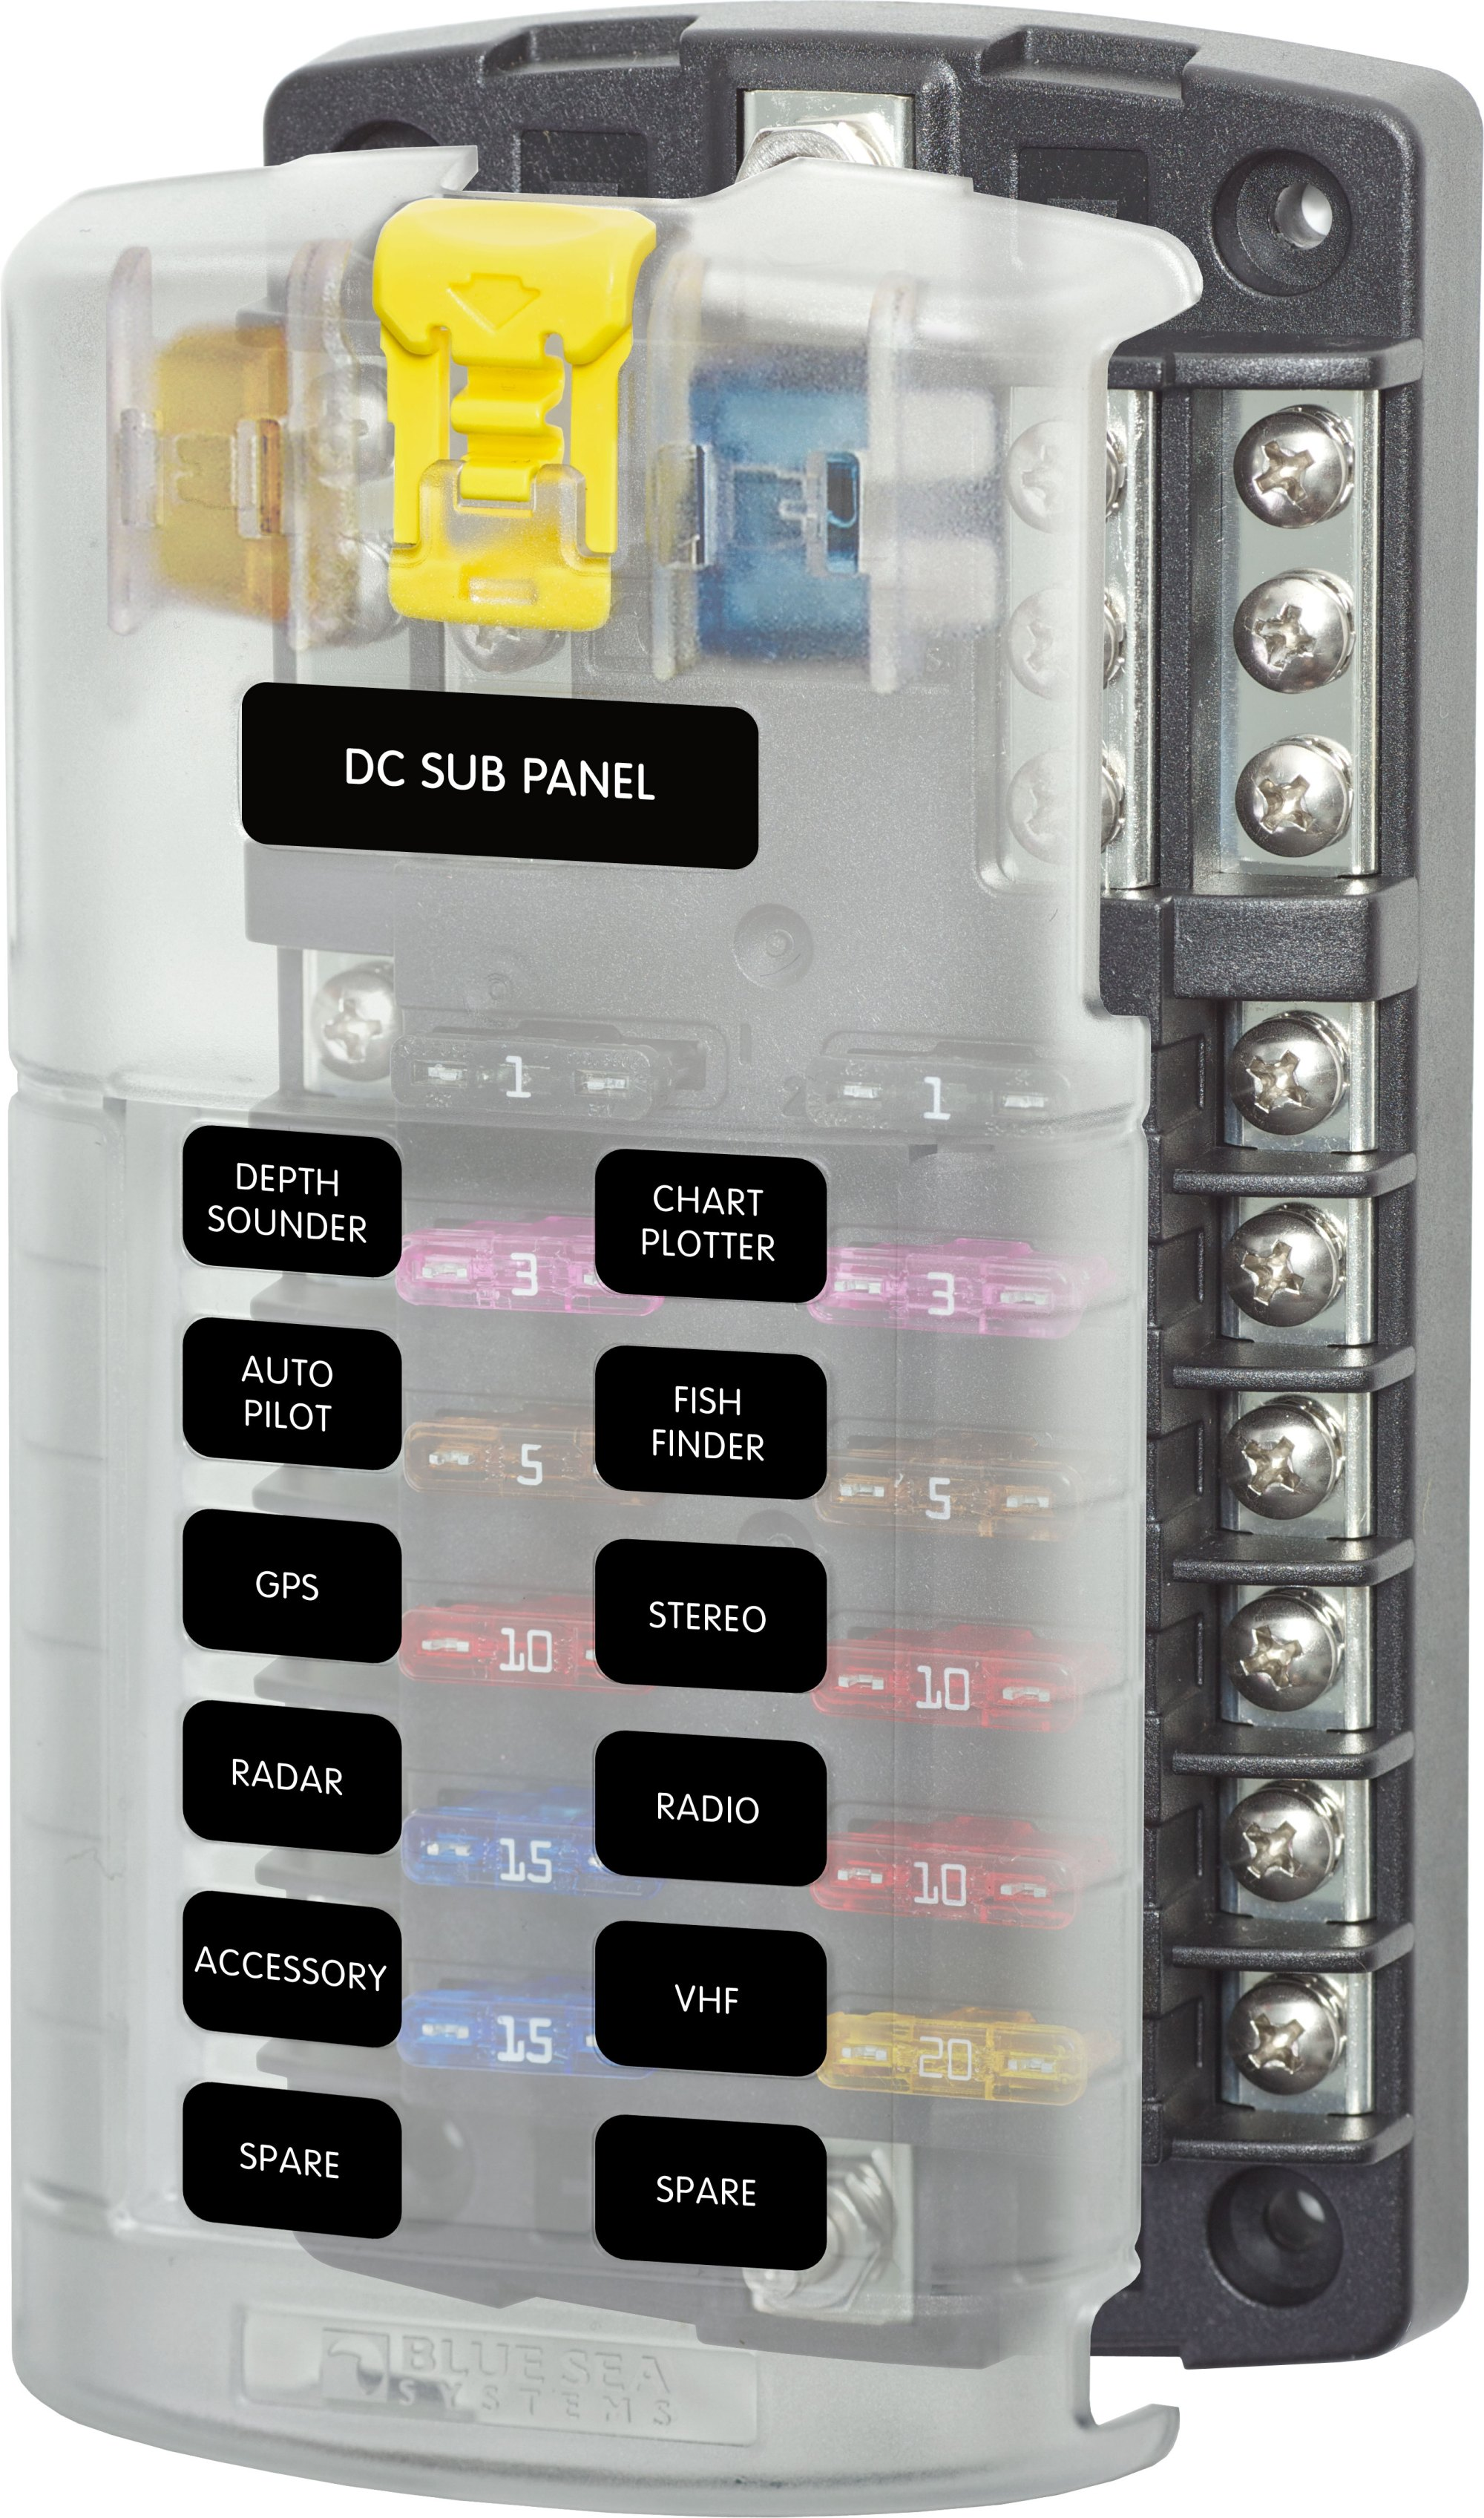 hight resolution of dc ac fuse box wiring diagrams well pump fuse box dc ac fuse box